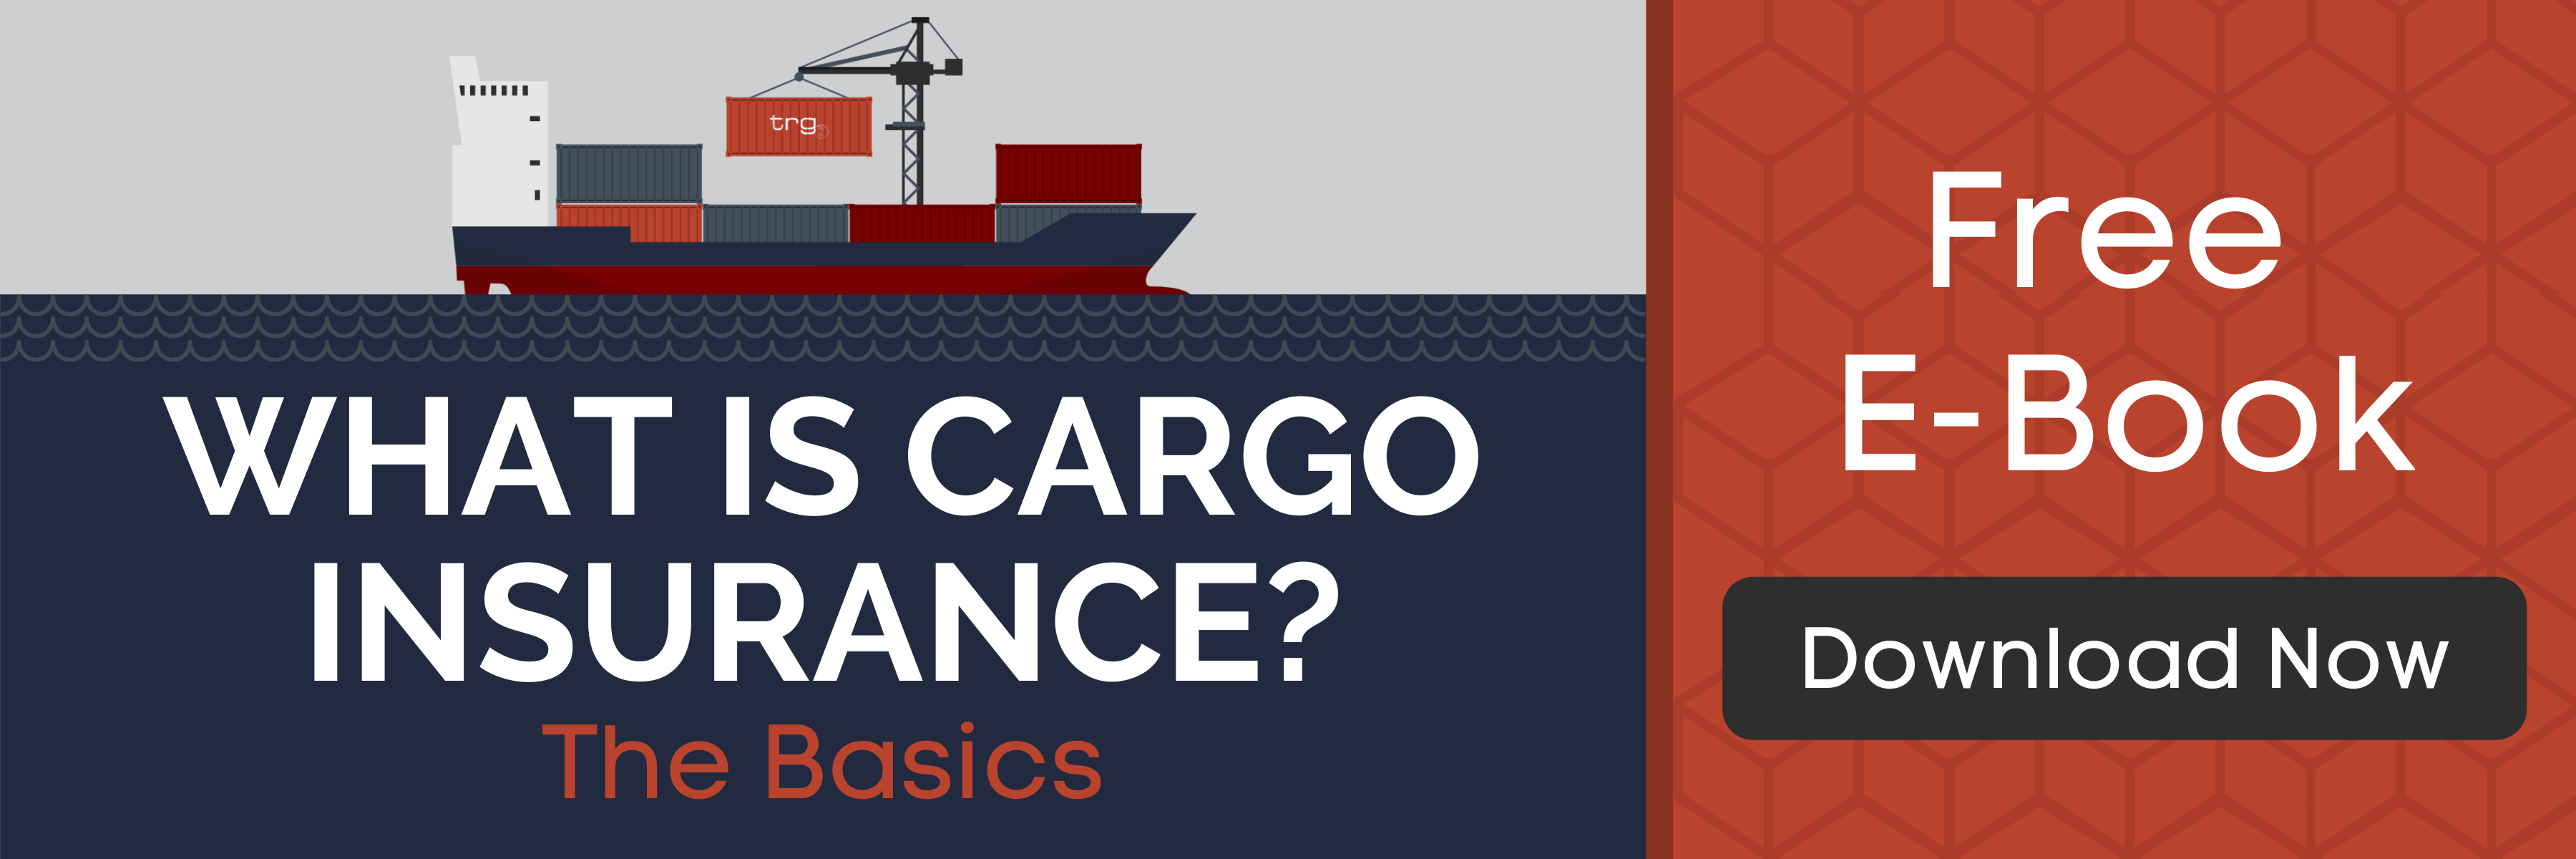 Learn more about Marine Cargo Insurance with a free PDF from Trade Risk Guaranty.